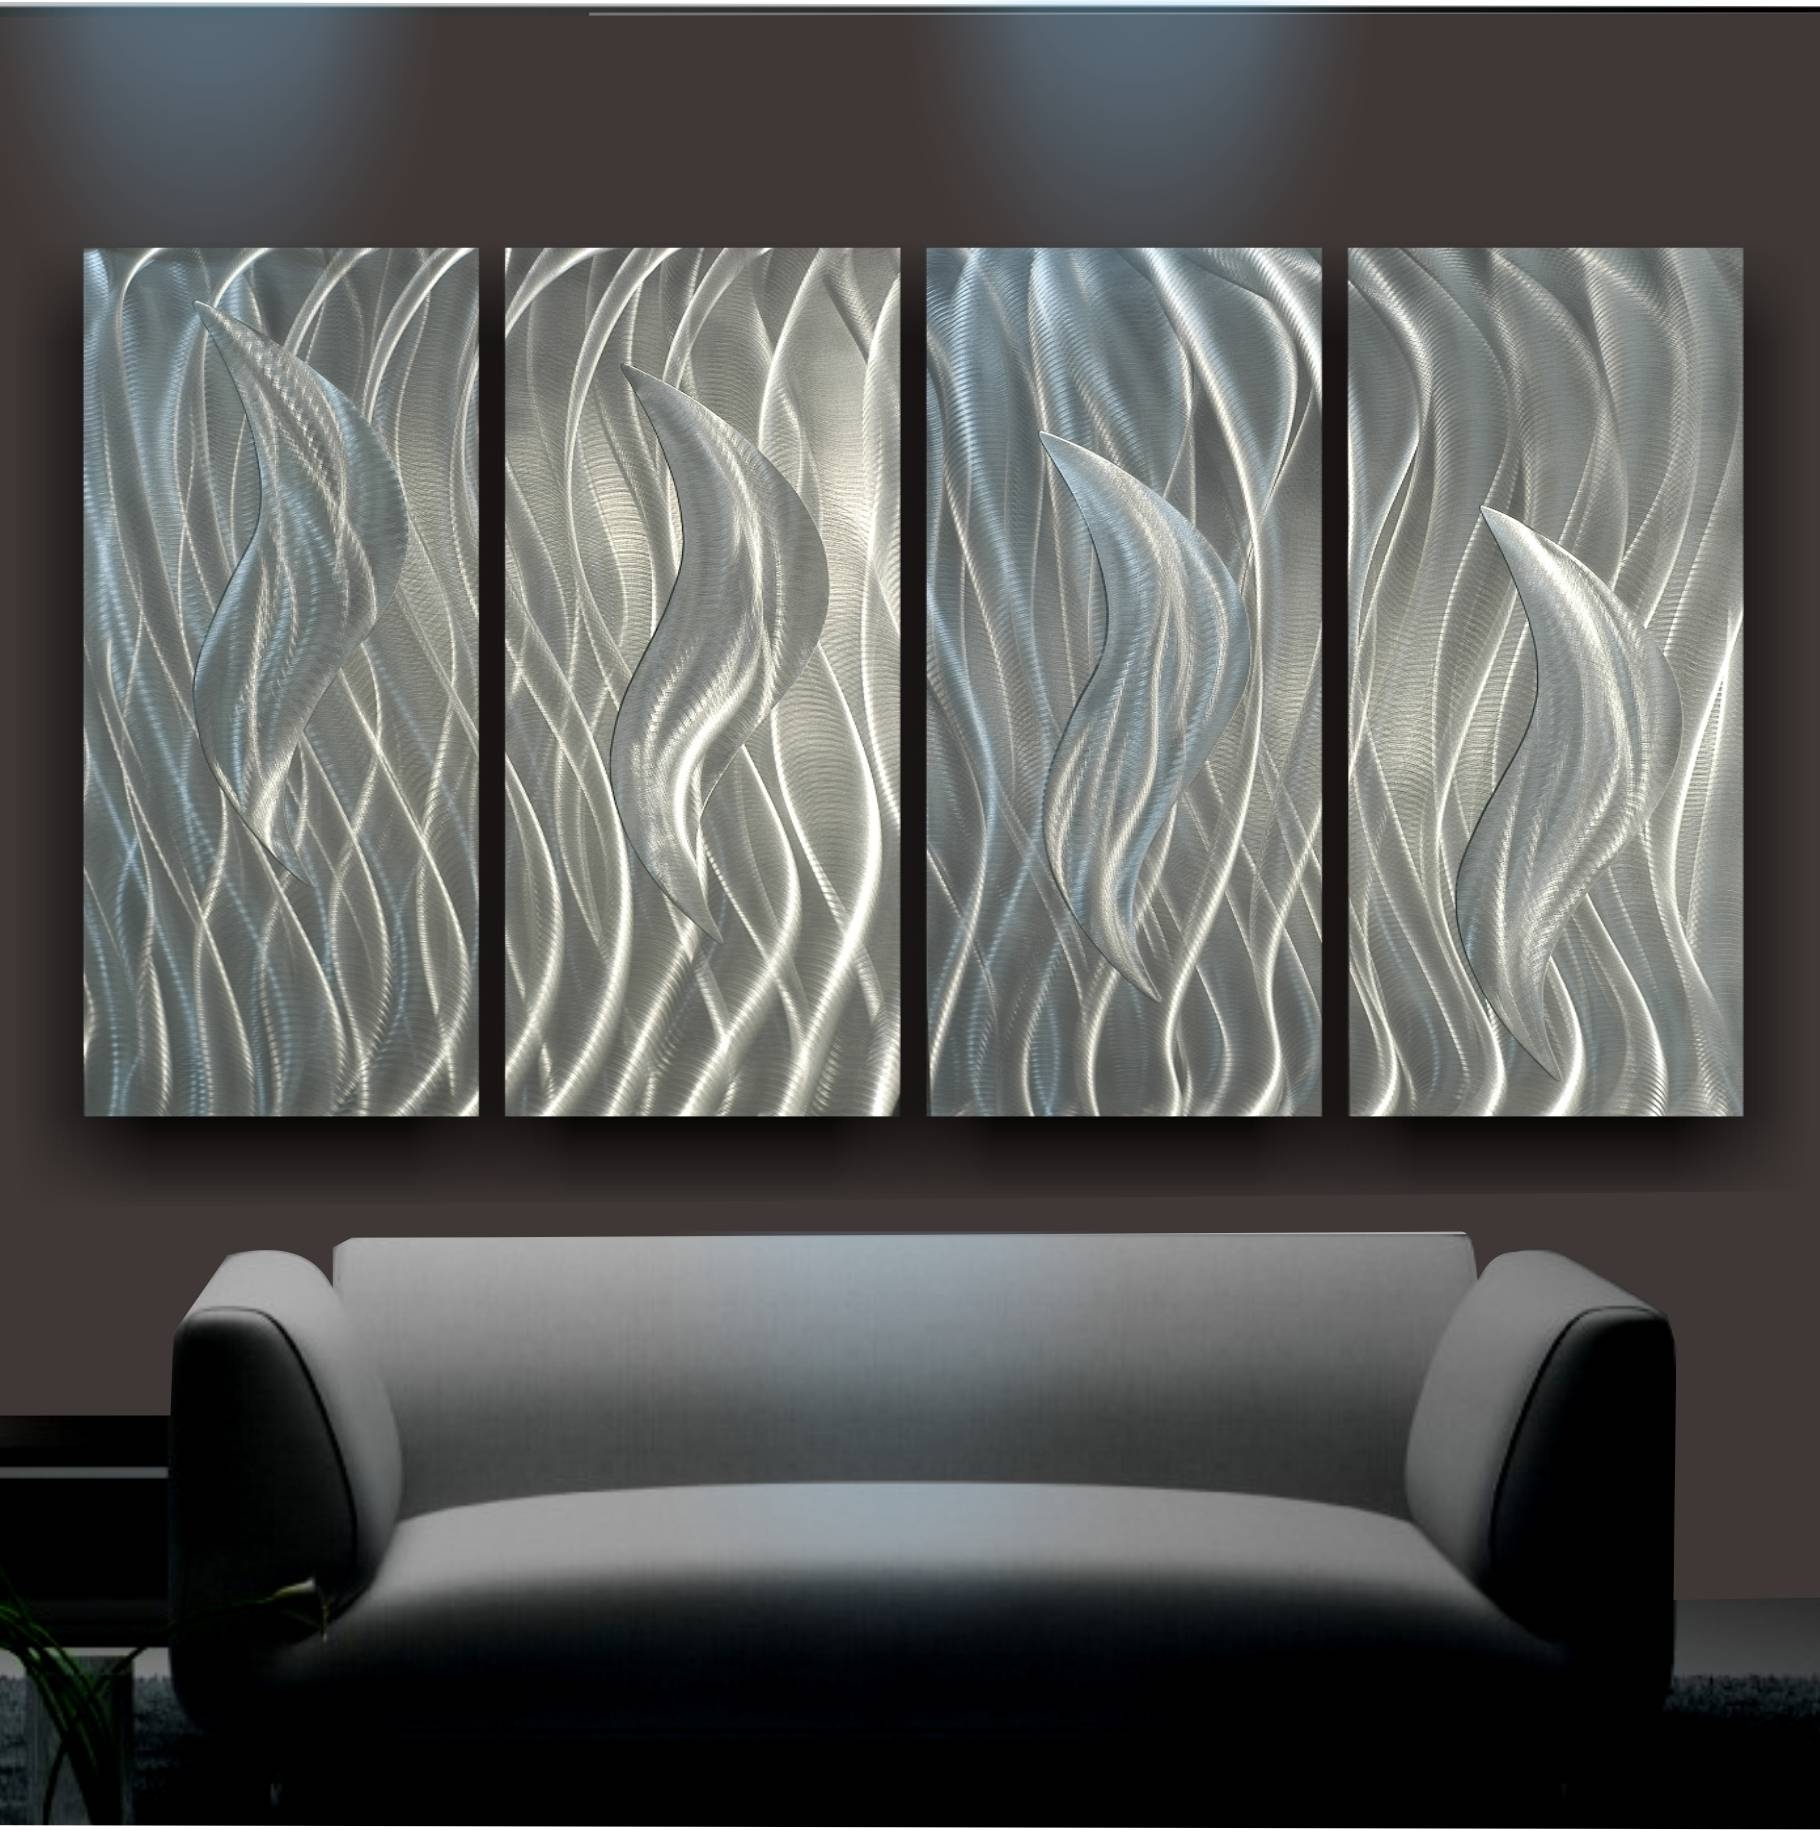 Modern Metal Wall Art — Jen & Joes Design : Popular Metal Wall Art Inside Newest Modern Metal Wall Art (View 11 of 20)